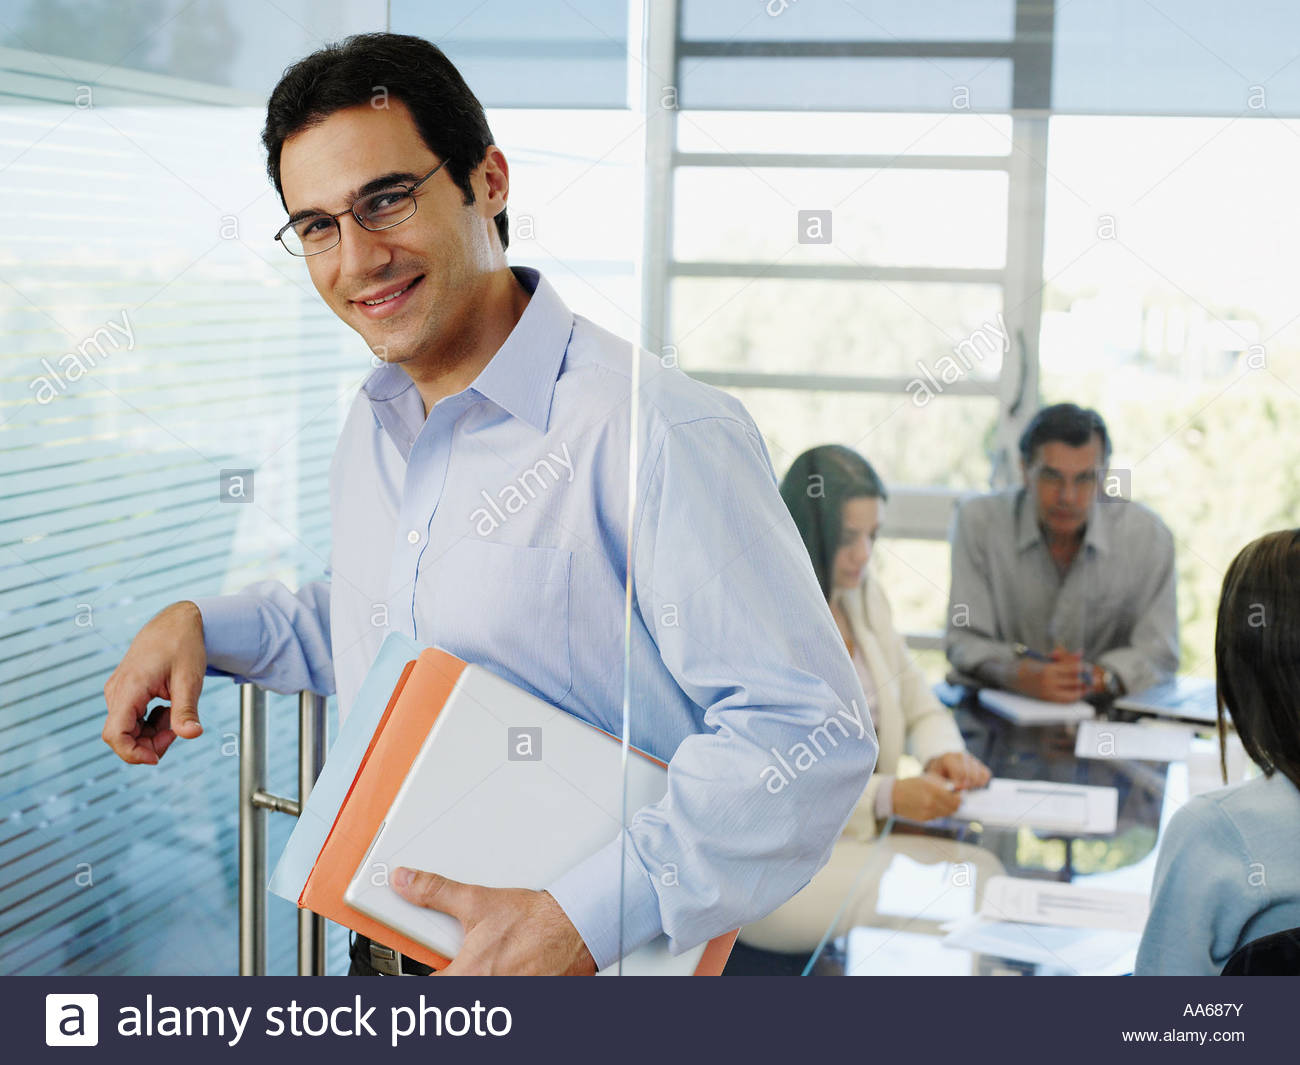 Male office worker holding papers while colleagues meet in background - Stock Image